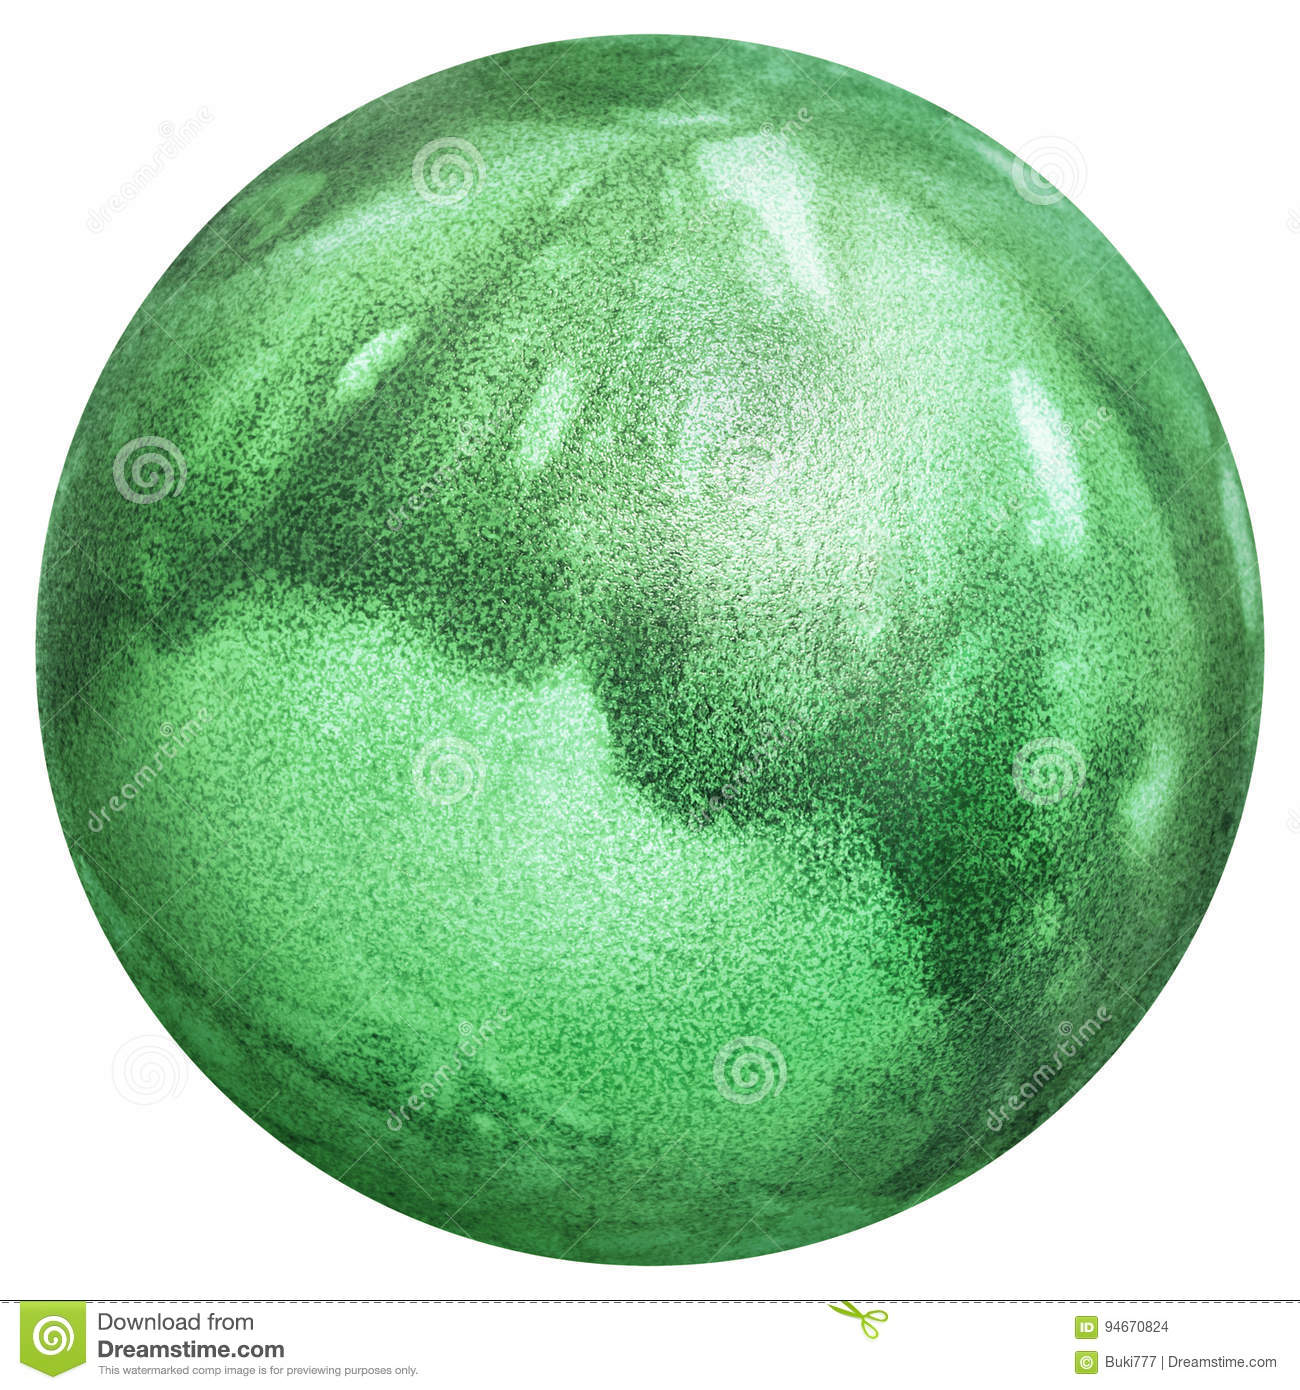 Easter Egg Dyed Kelly Green and Decorated with Leaves Imprints Top View Isolated On White Background